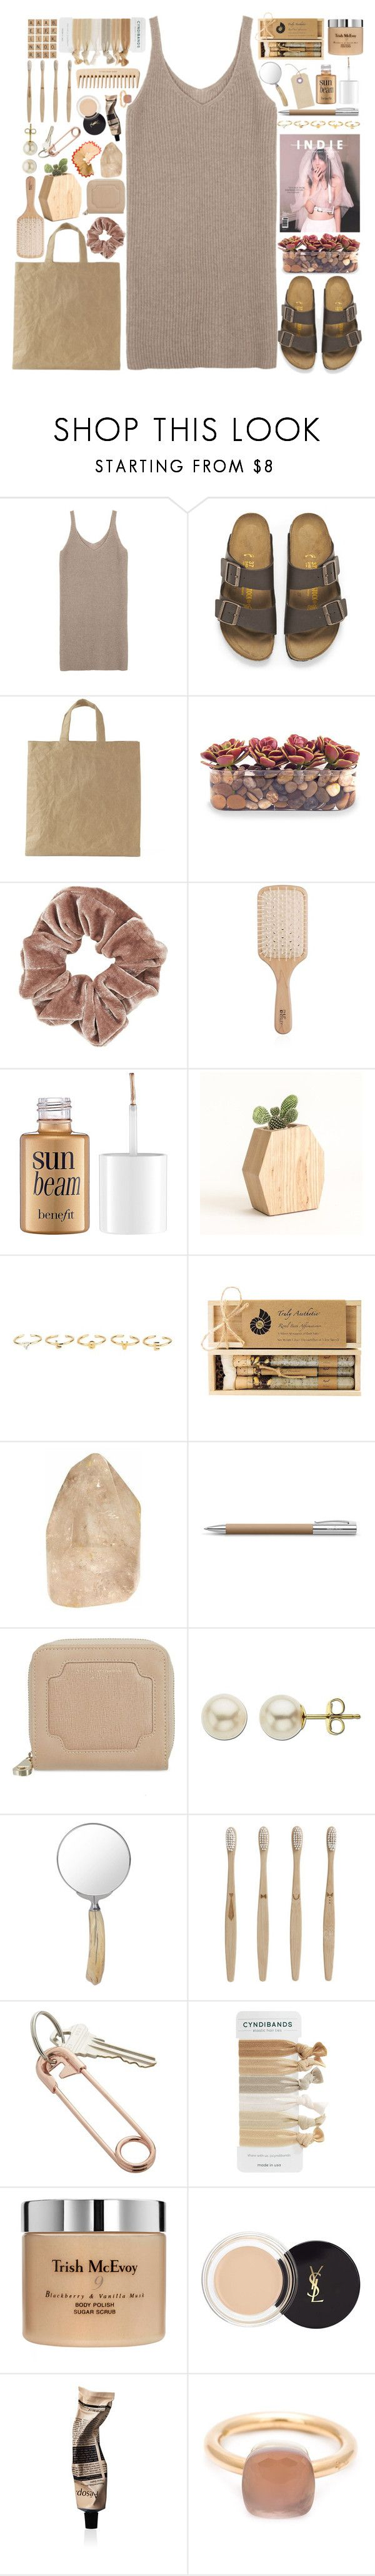 """""""Hands To Myself"""" by annaclaraalvez on Polyvore featuring moda, Birkenstock, John-Richard, Topshop, INDIE HAIR, Philip Kingsley, Benefit, Maria Francesca Pepe, Truly Aesthetic e Faber-Castell"""